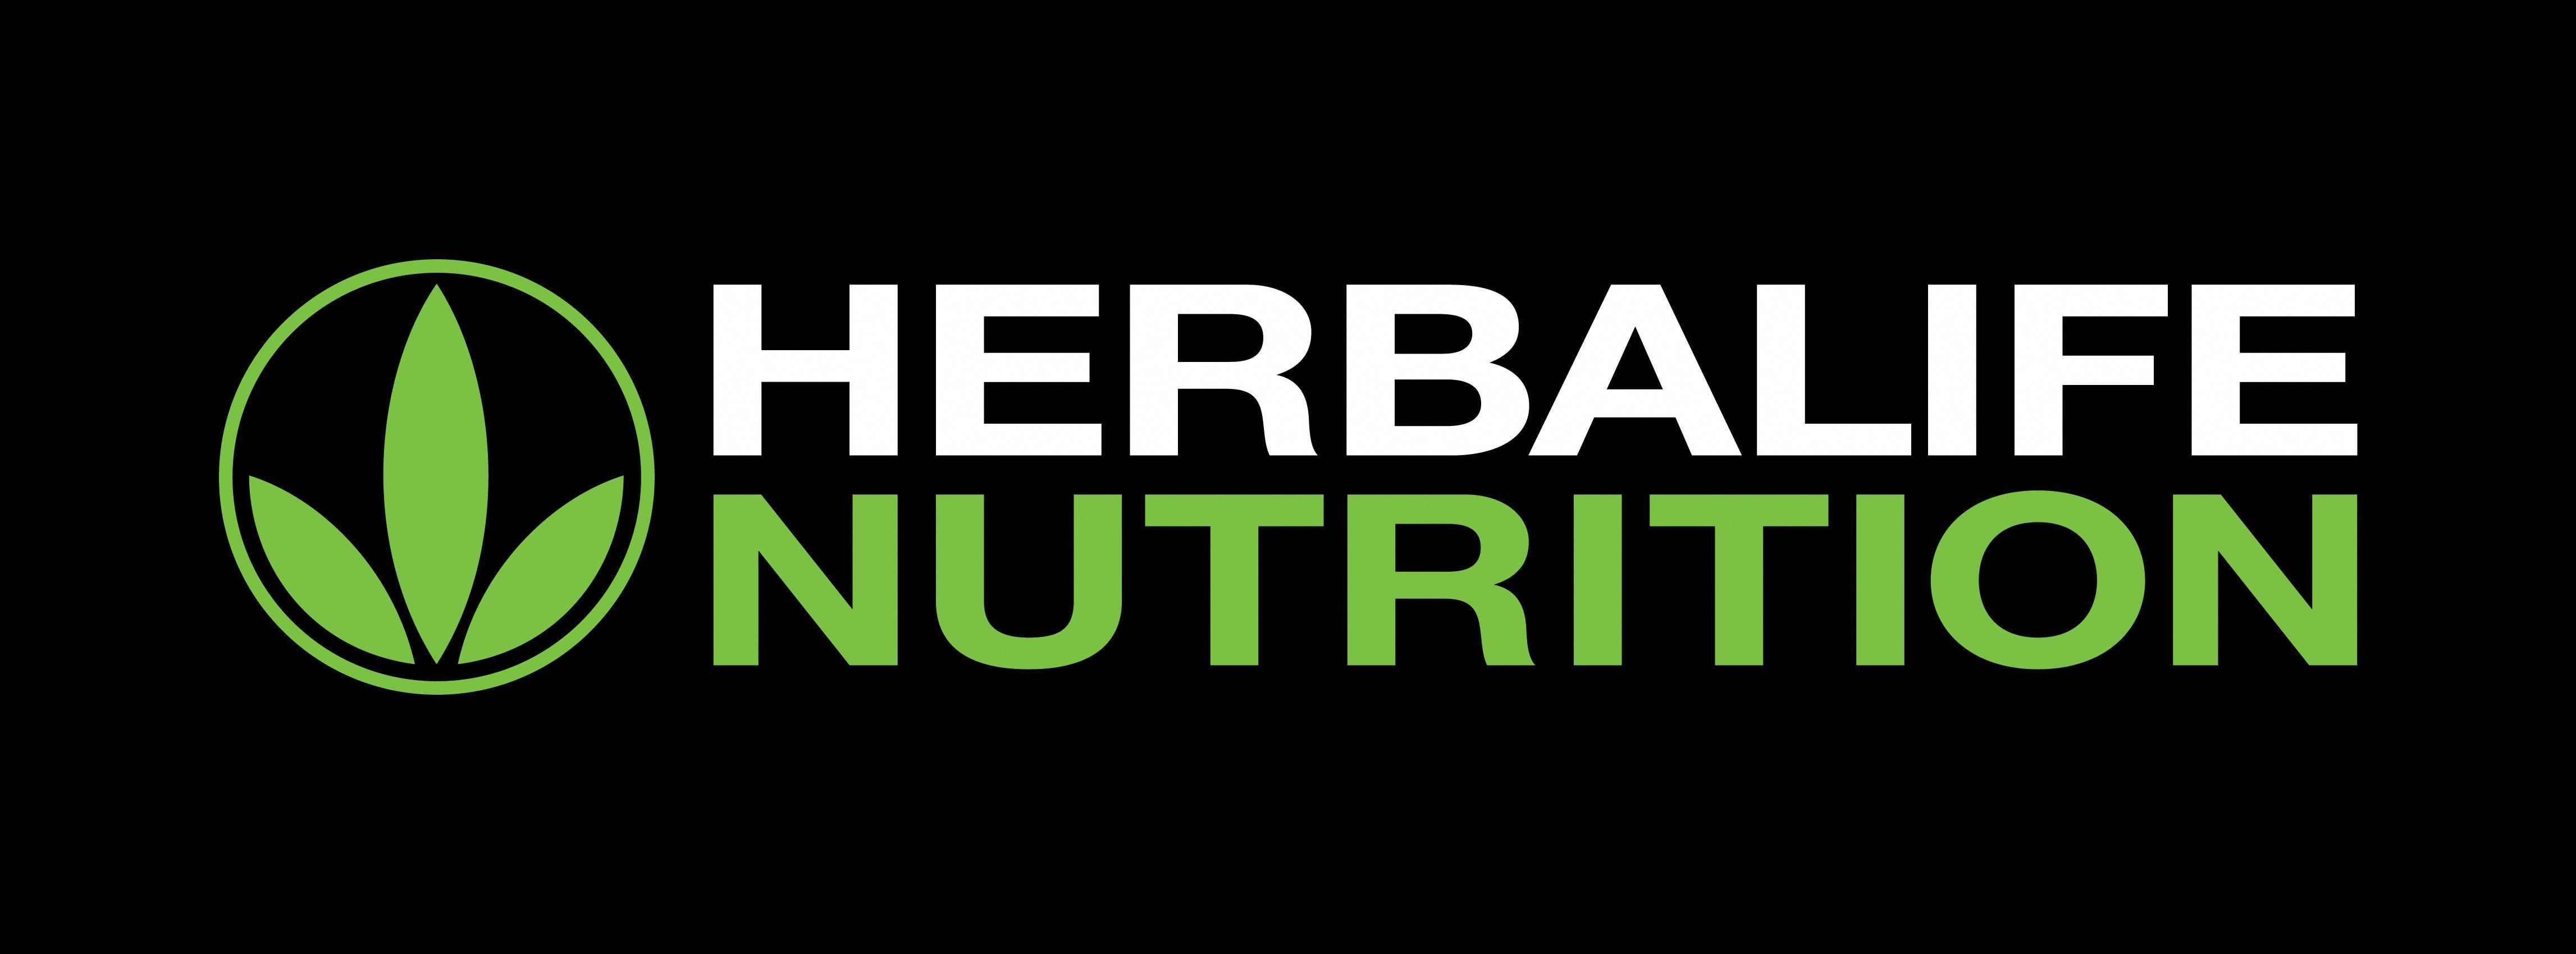 Nutrition Facts Recipes Nutritionfooddesign Nutrition Month Logo Cute Nutrition Quotes Nutrition Logo Herbalife Nutrition Herbalife